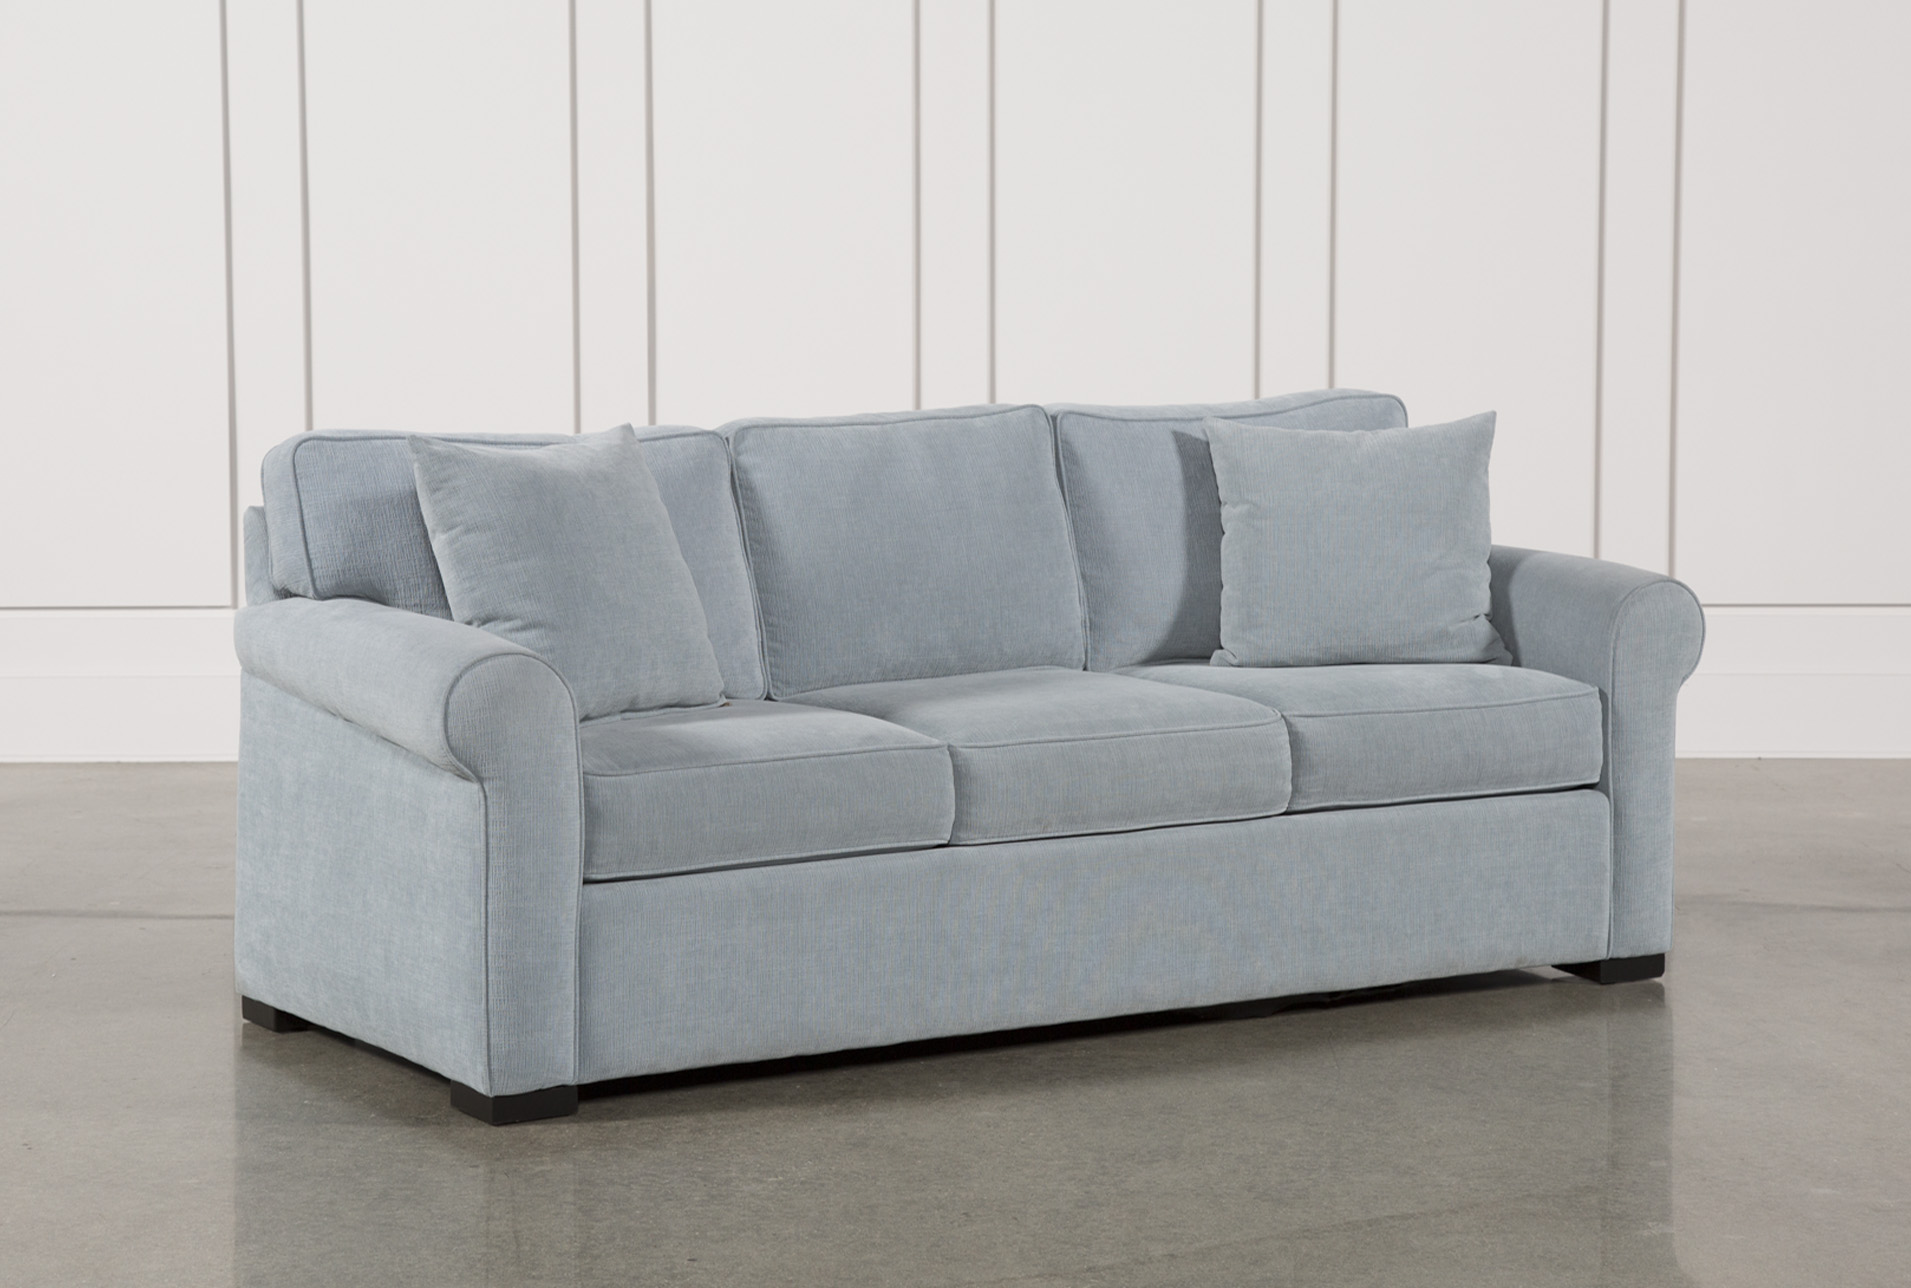 Incroyable Willow Sofa   360